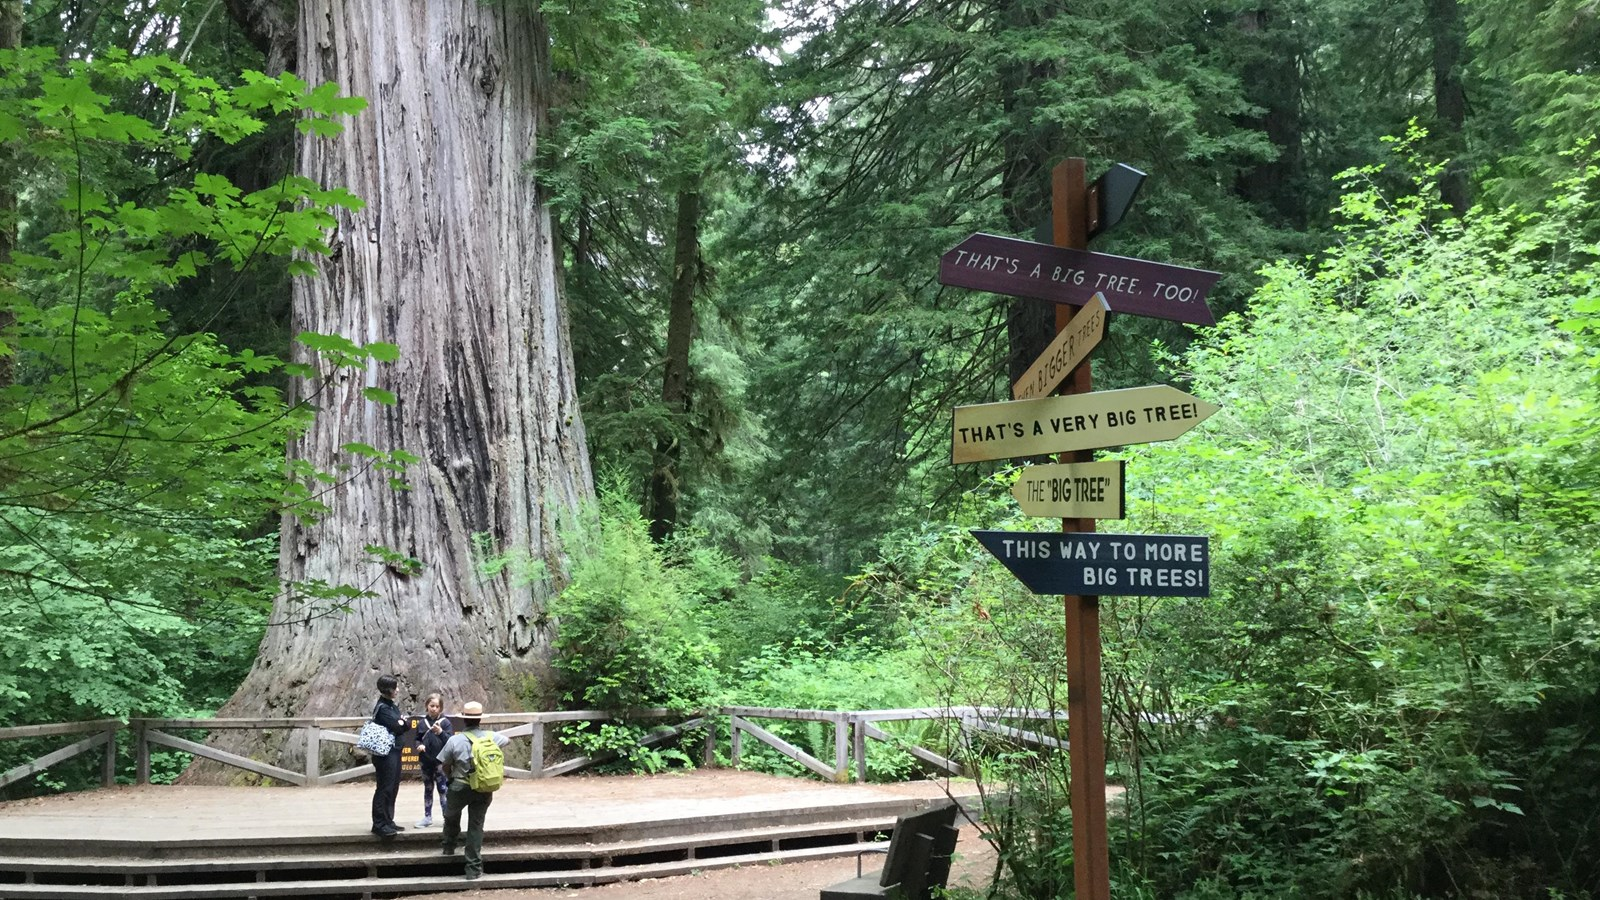 People stand next to redwood tree and a viewing deck. Orientation signs in the foreground.